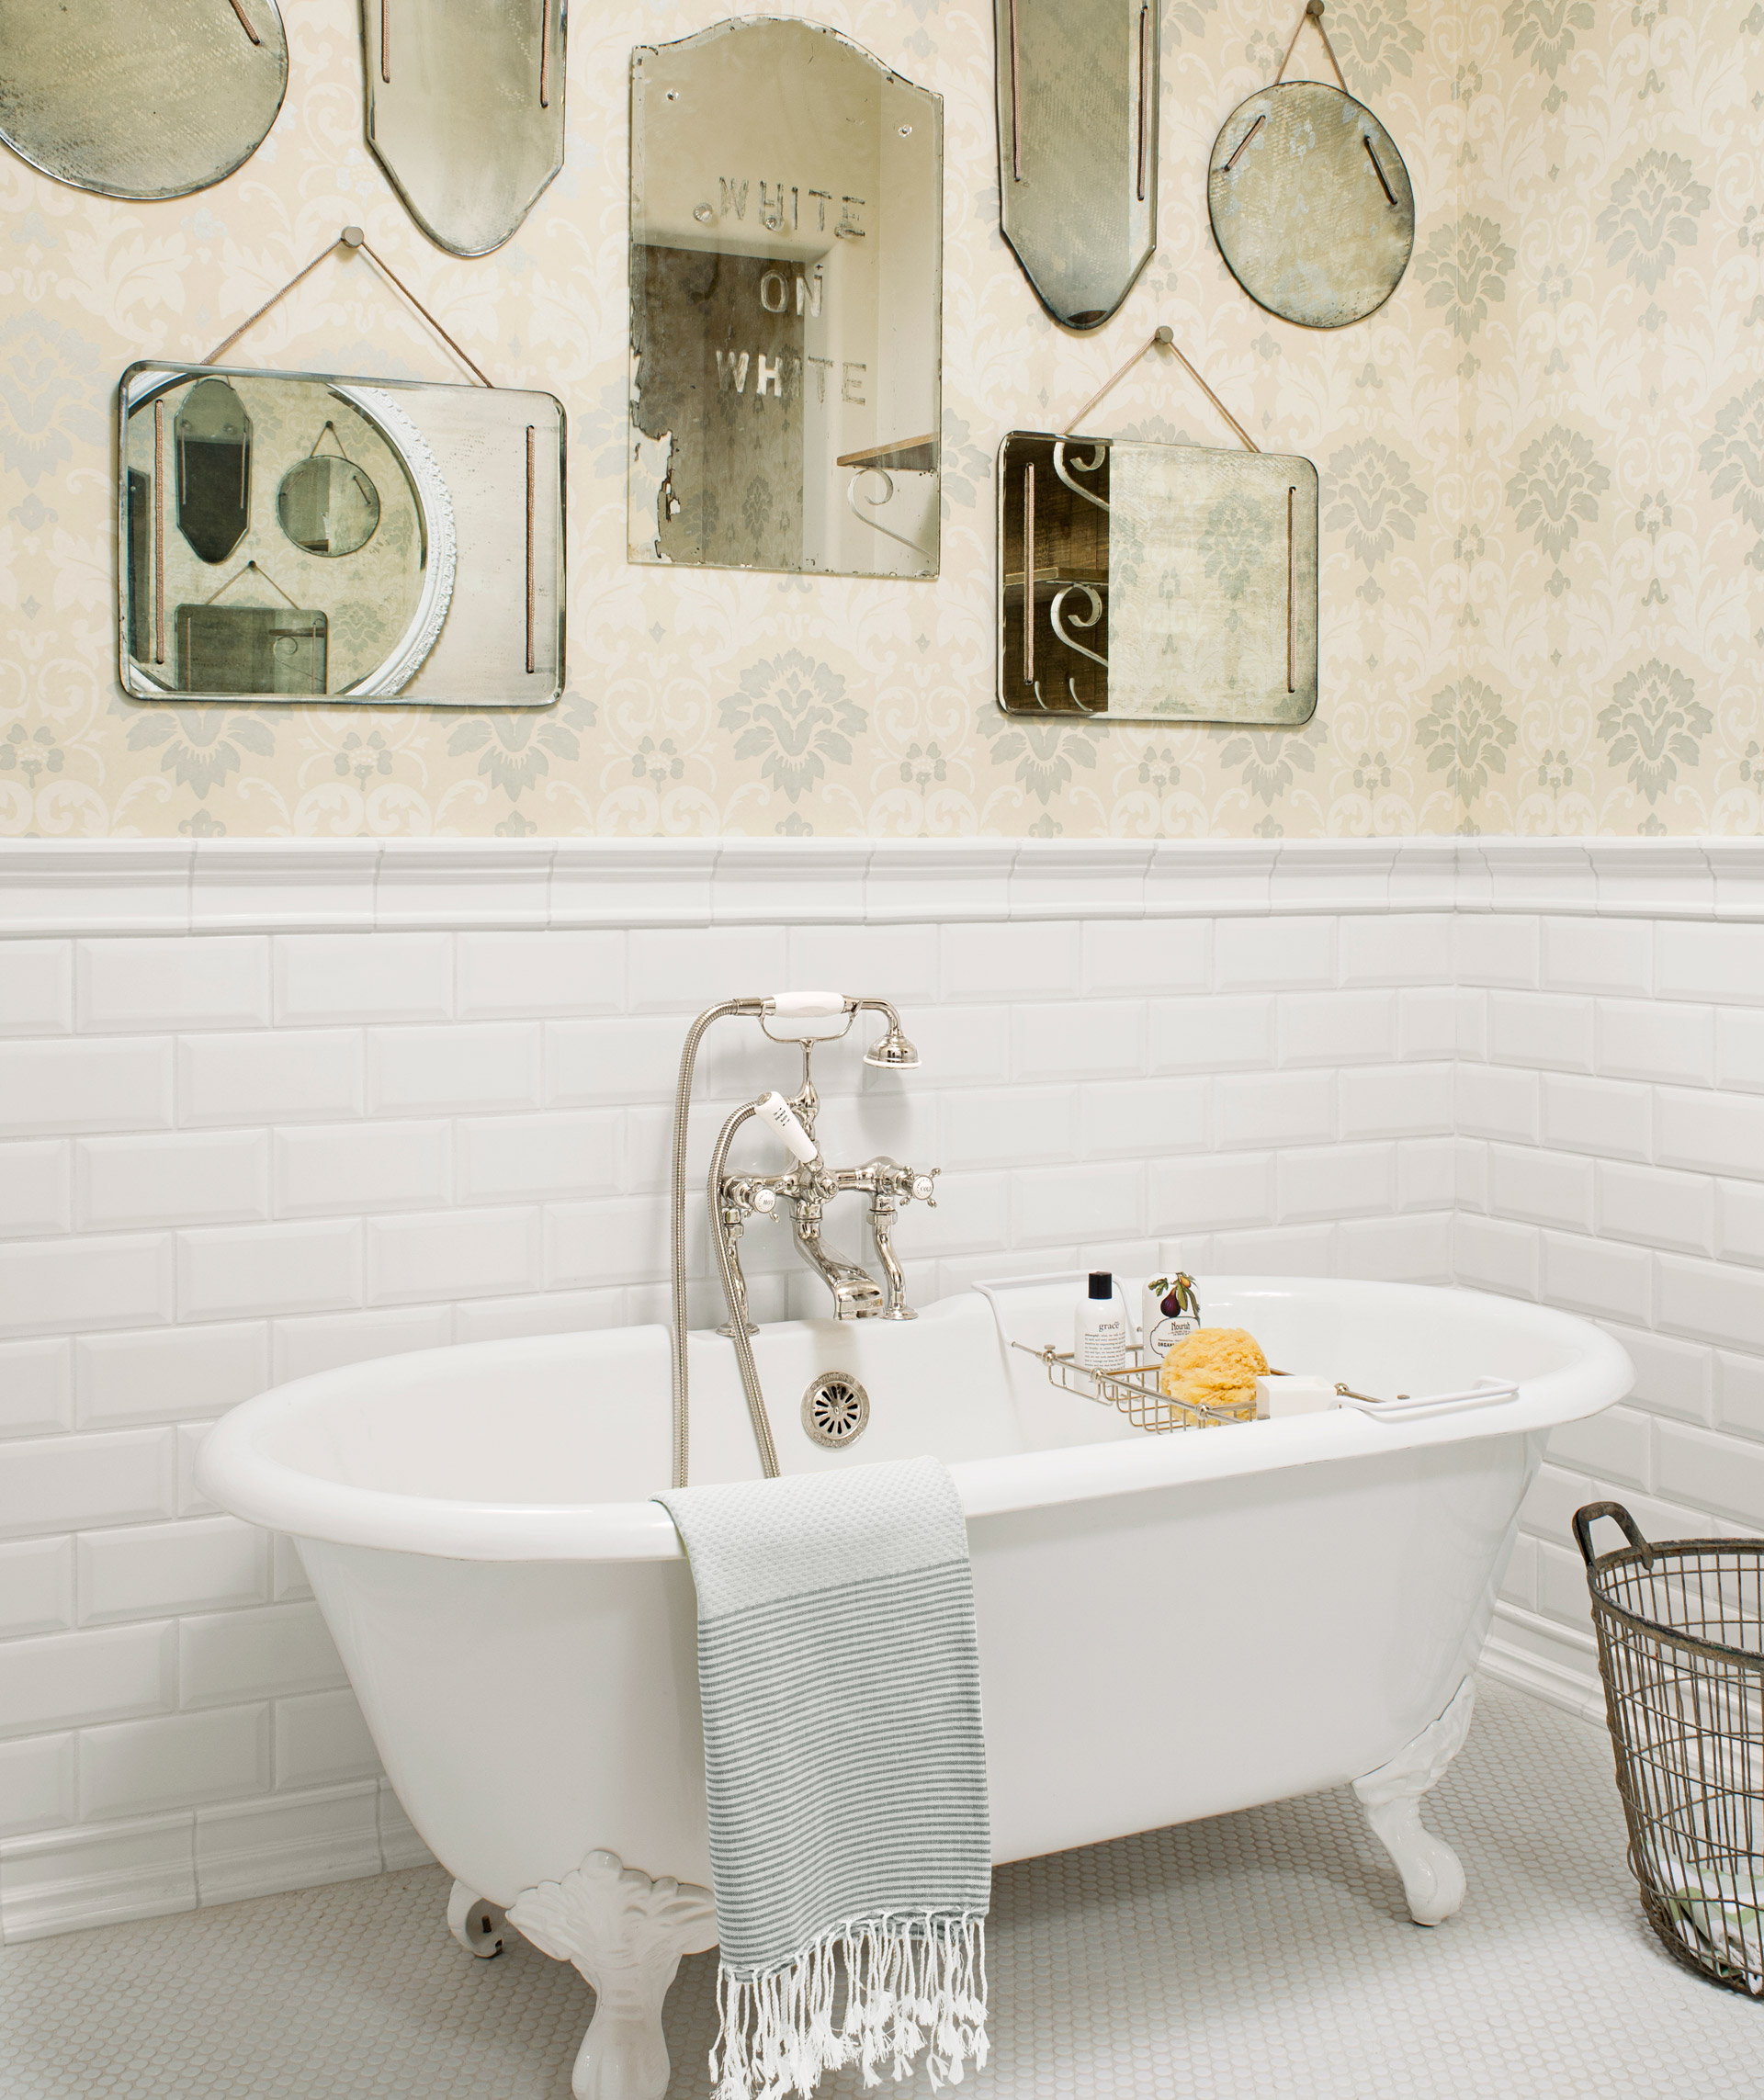 Bathroom Accessories Vintage 90 best bathroom decorating ideas - decor & design inspirations